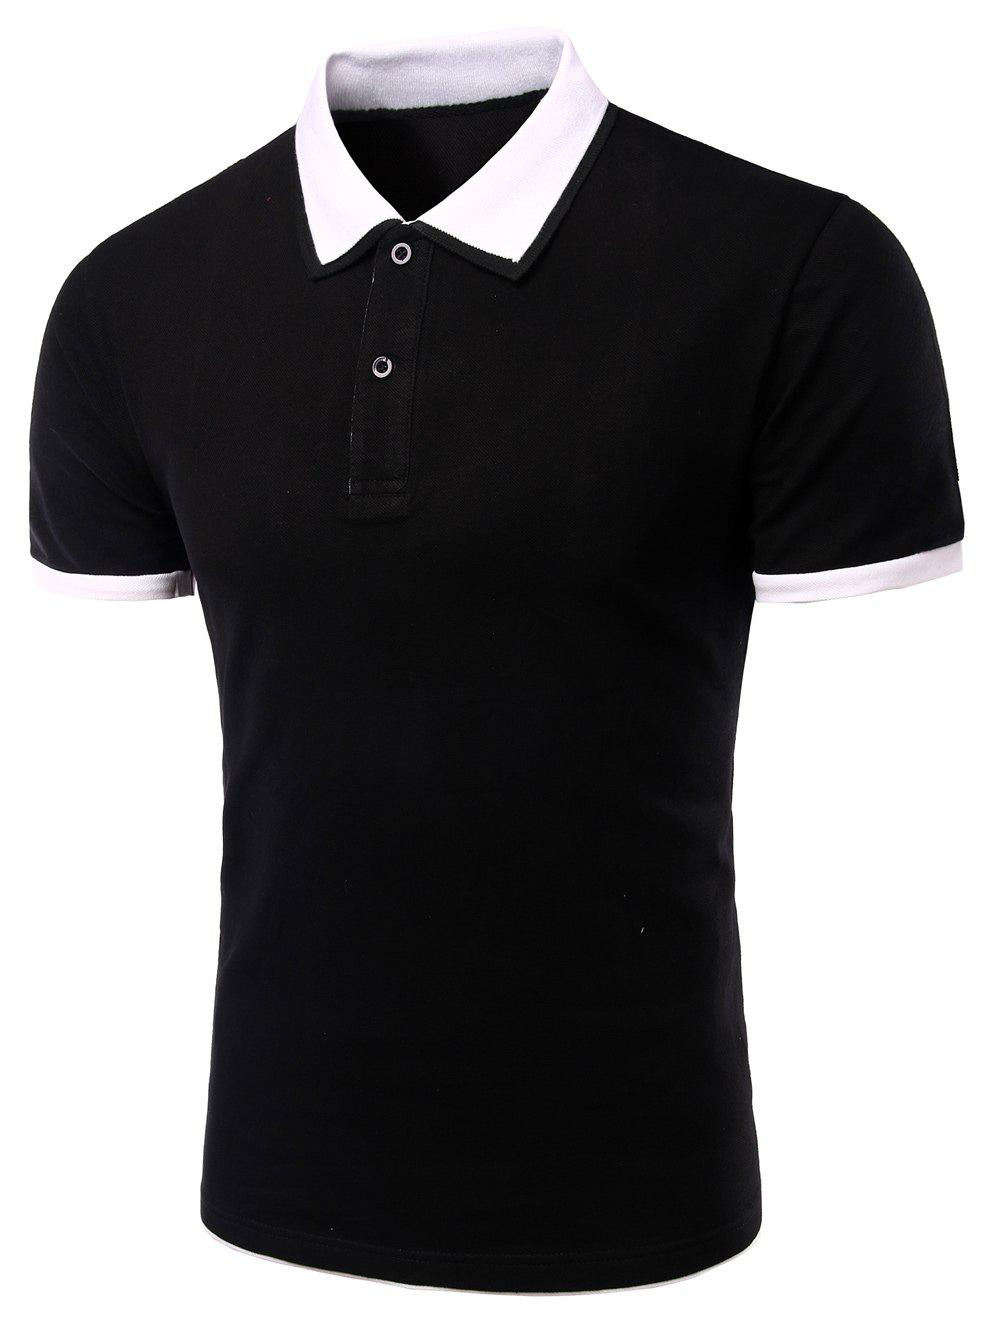 Men's Turn-down Collar Solid  Color Short Sleeves Polo T-Shirt - WHITE/BLACK XL